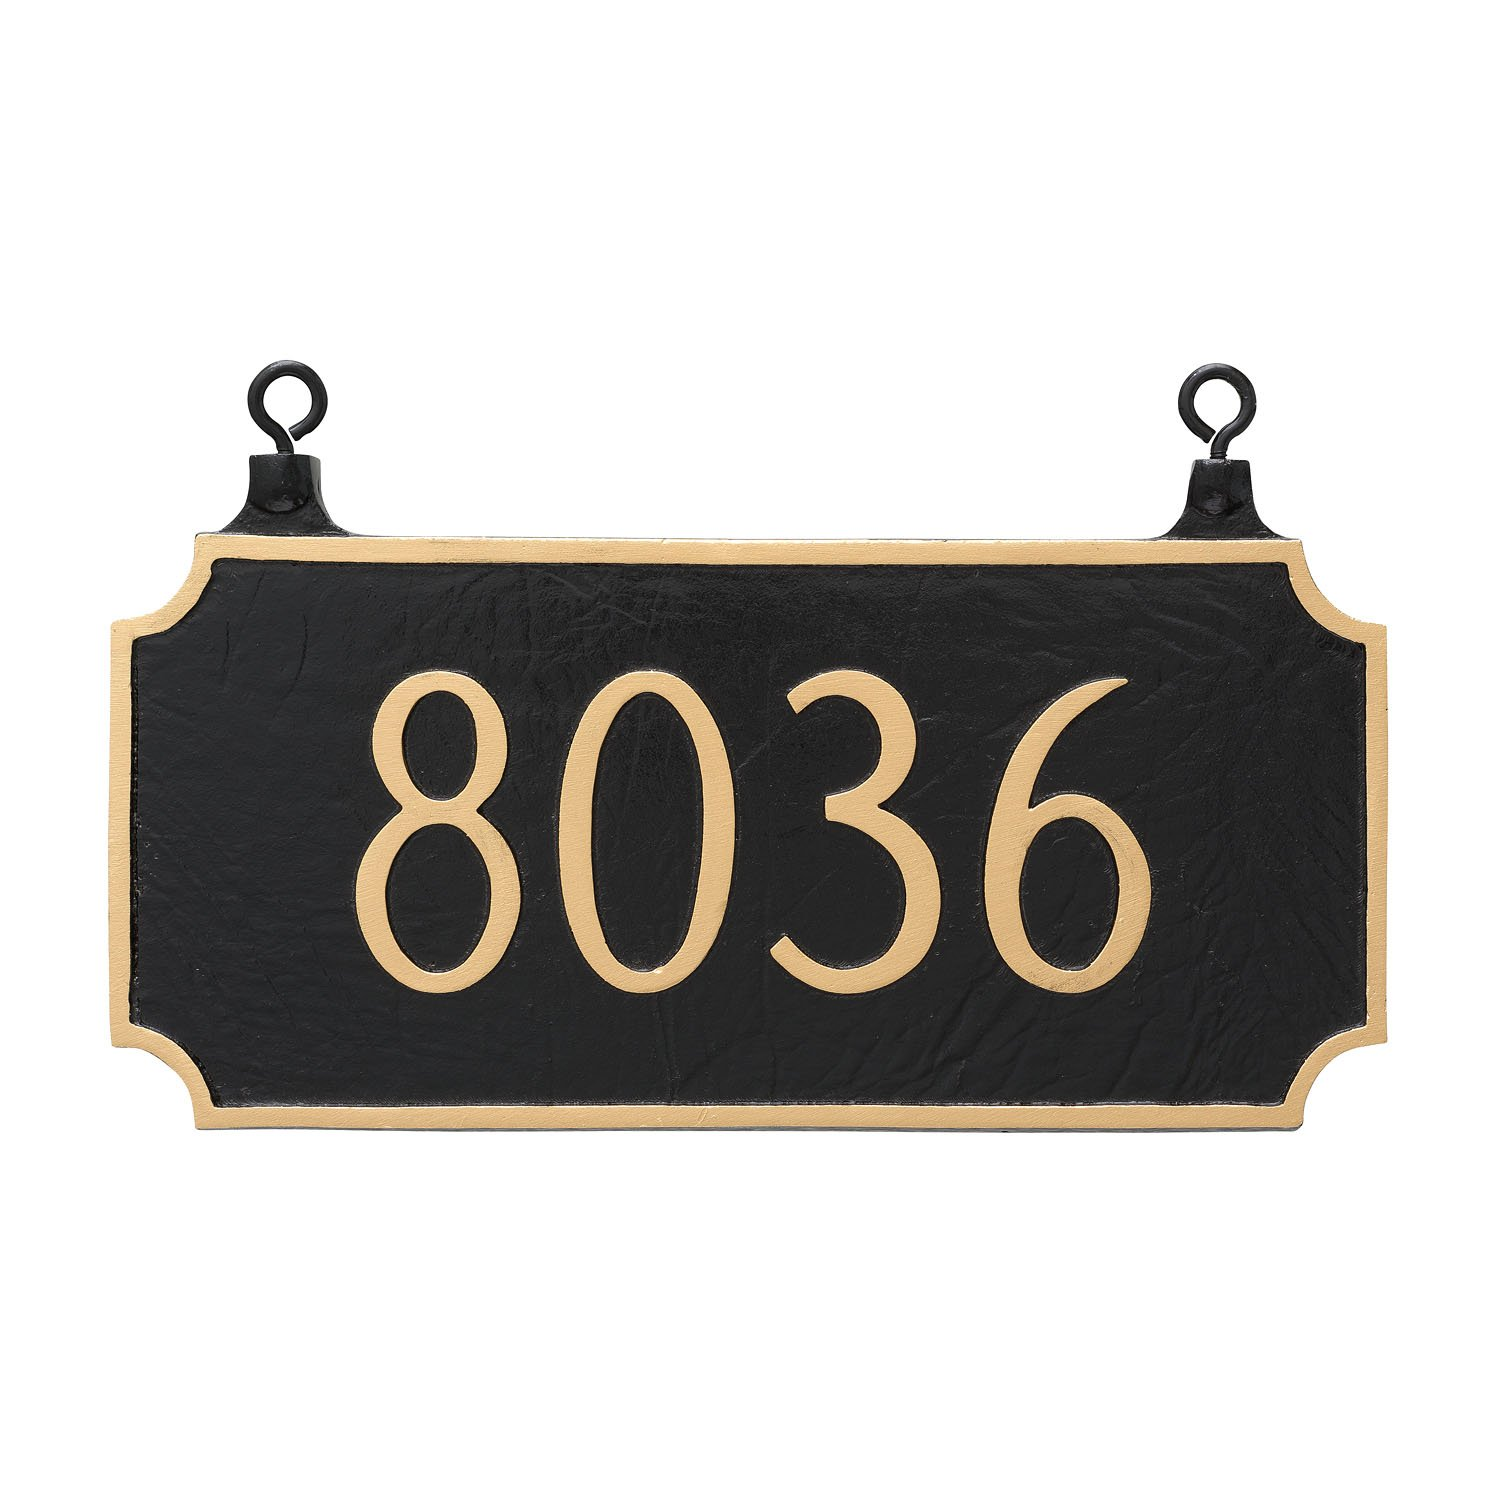 Montague Metal TSH-0005S1-H-BW Double Sided Hanging Princeton Address Sign Plaque, 7.25'' x 15.75'', Black/White